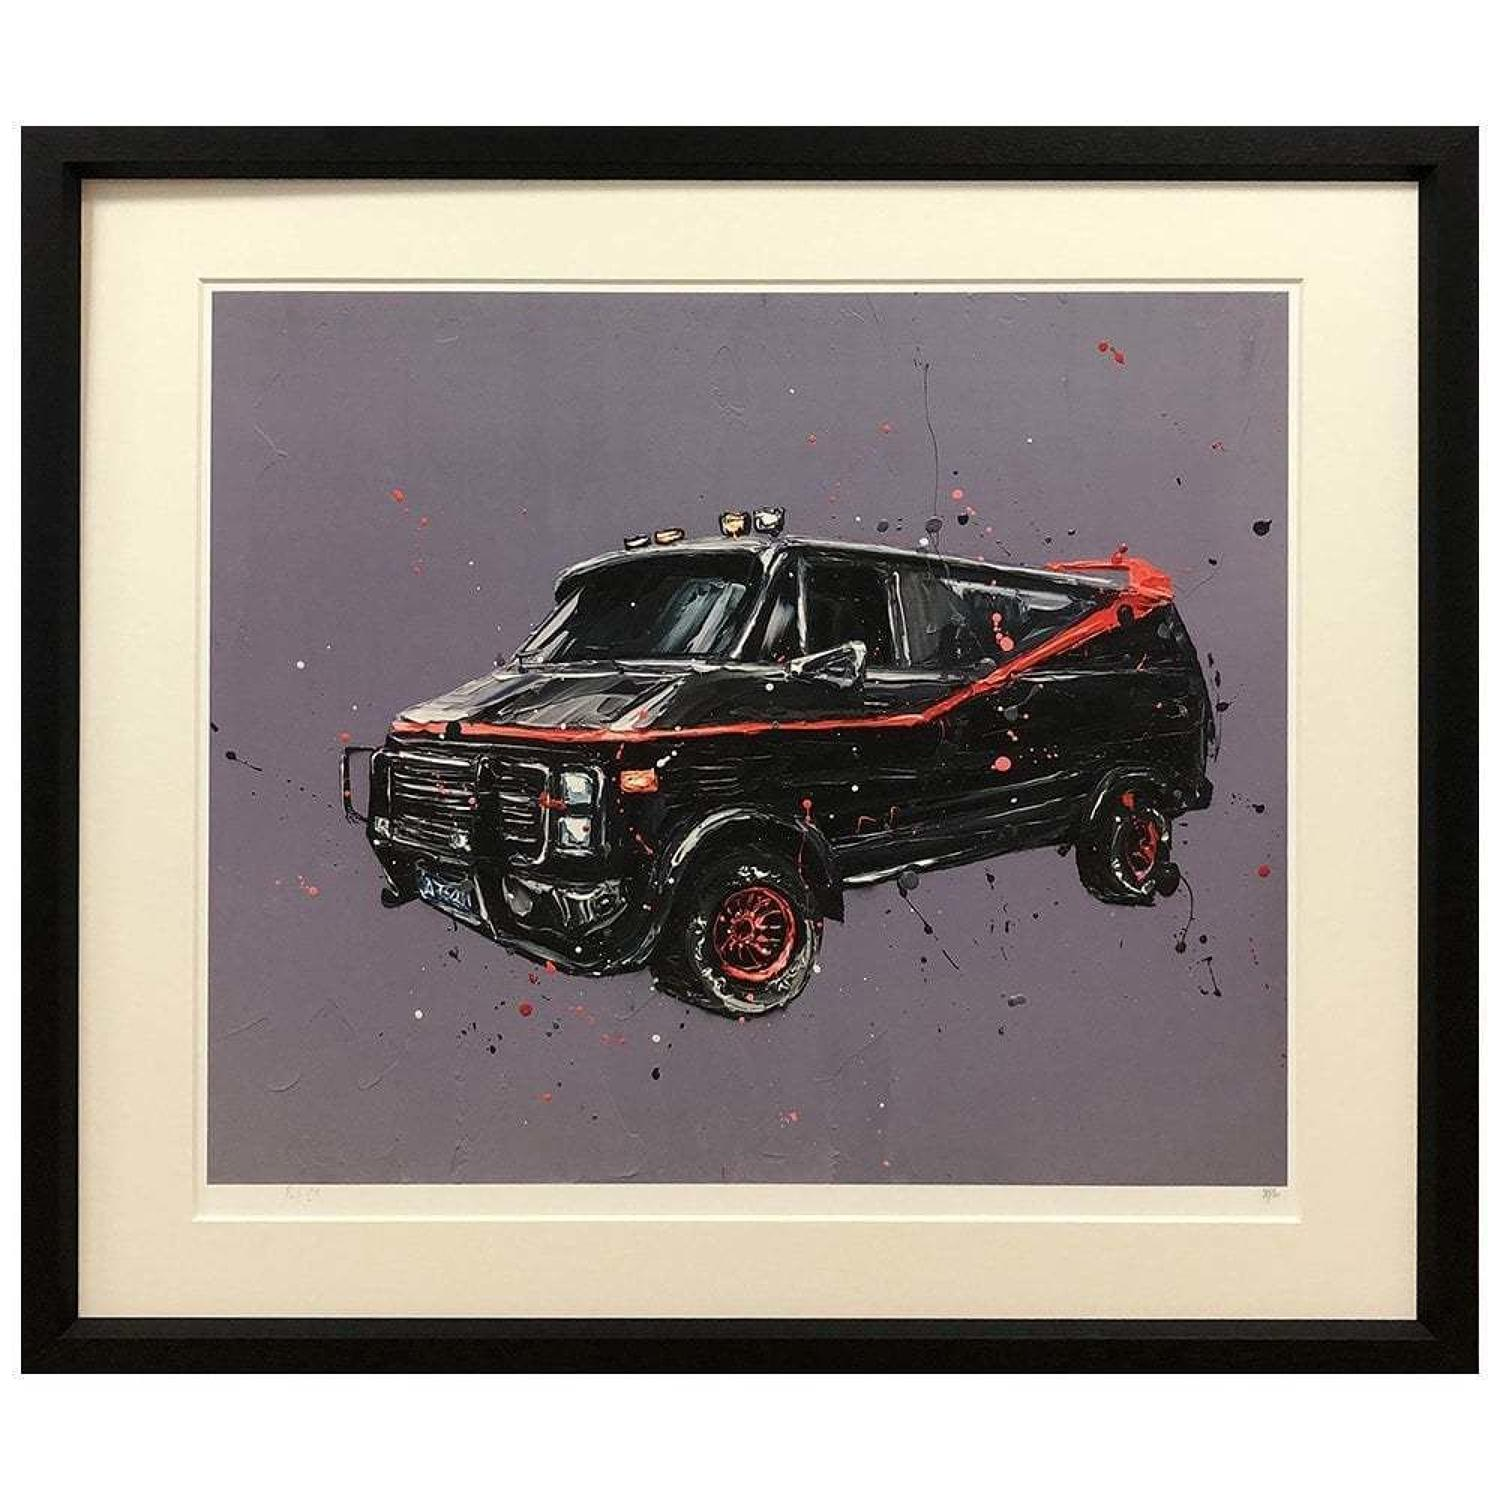 I Love It When A Plan Comes Together Framed Art Print Paul Oz